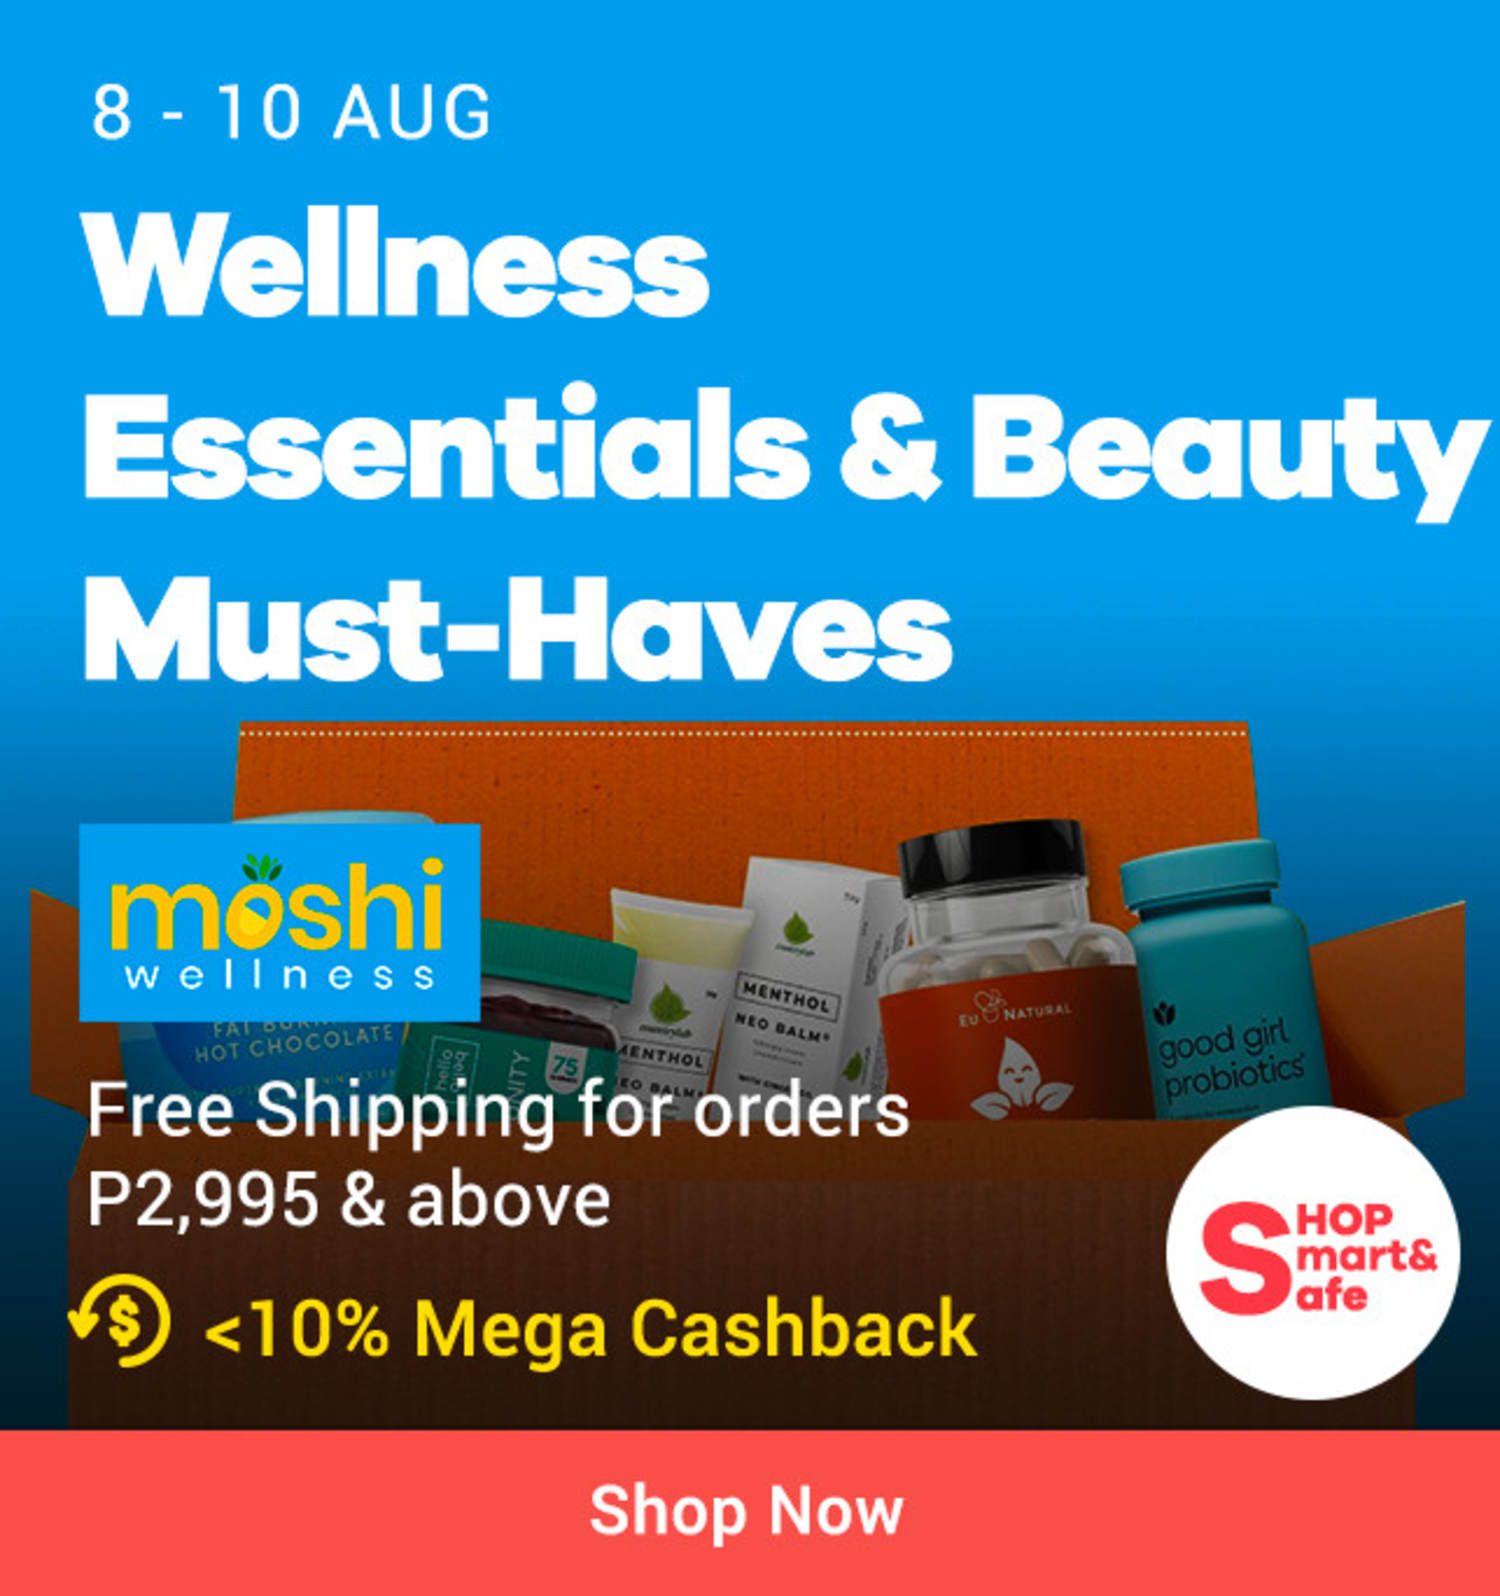 Moshi Wellness: Wellness Essentials & Beauty Must Haves